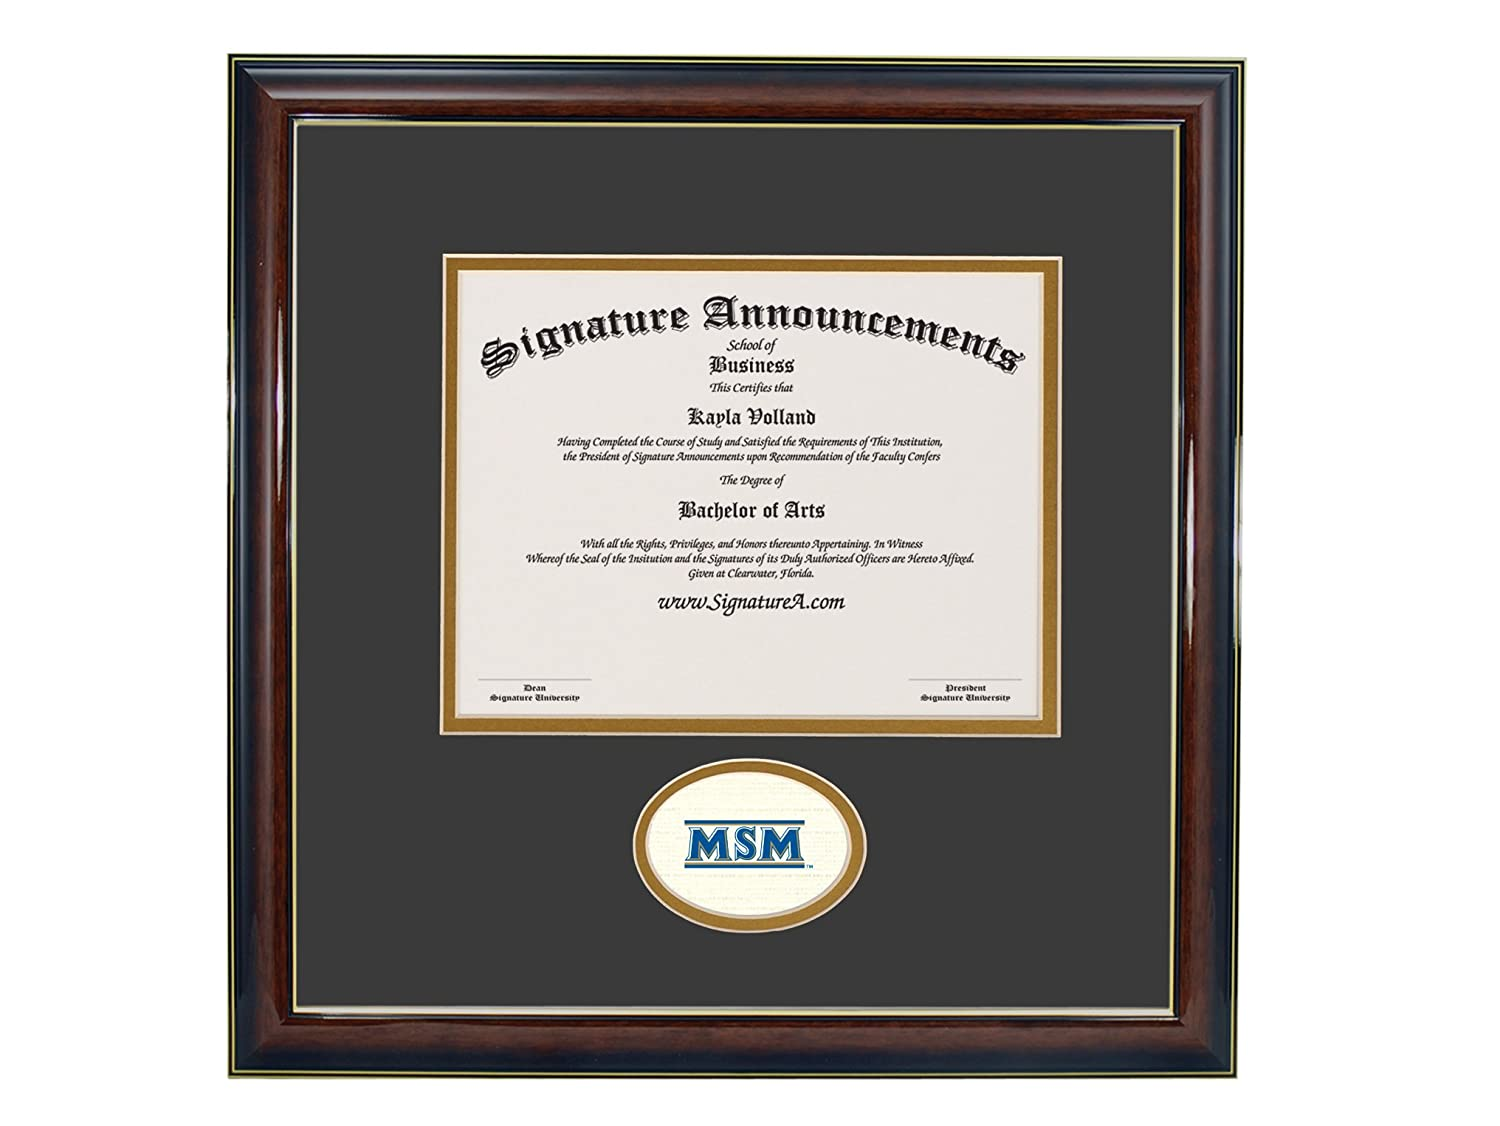 Signature Announcements Mount-St-Marys-University Sculpted Foil Seal Graduation Diploma Frame 16 x 16 Gold Accent Gloss Mahogany